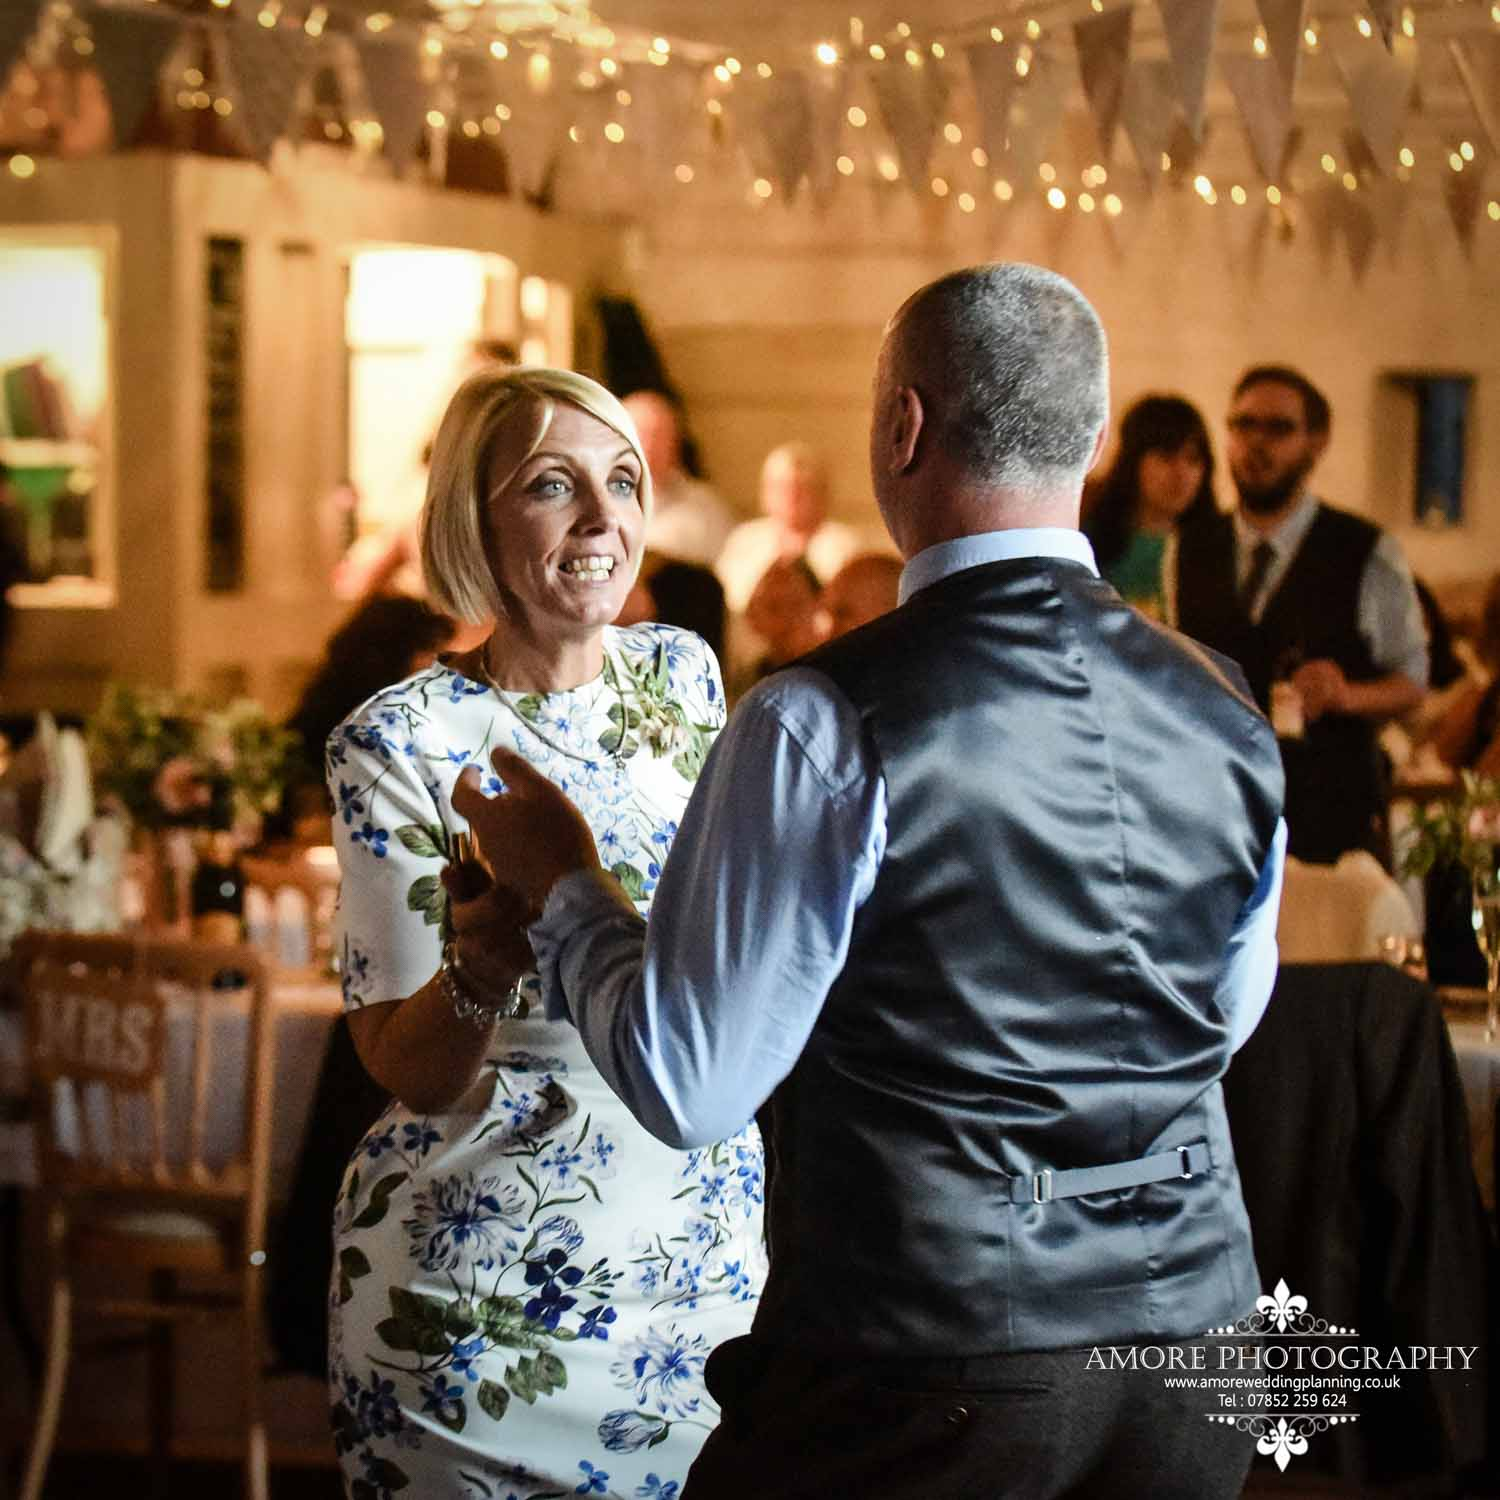 Vintage Wedding Photographer Wakefield North Yorkshire Leeds Wedding Photography Vintage Rustic Barn Weddings (169)